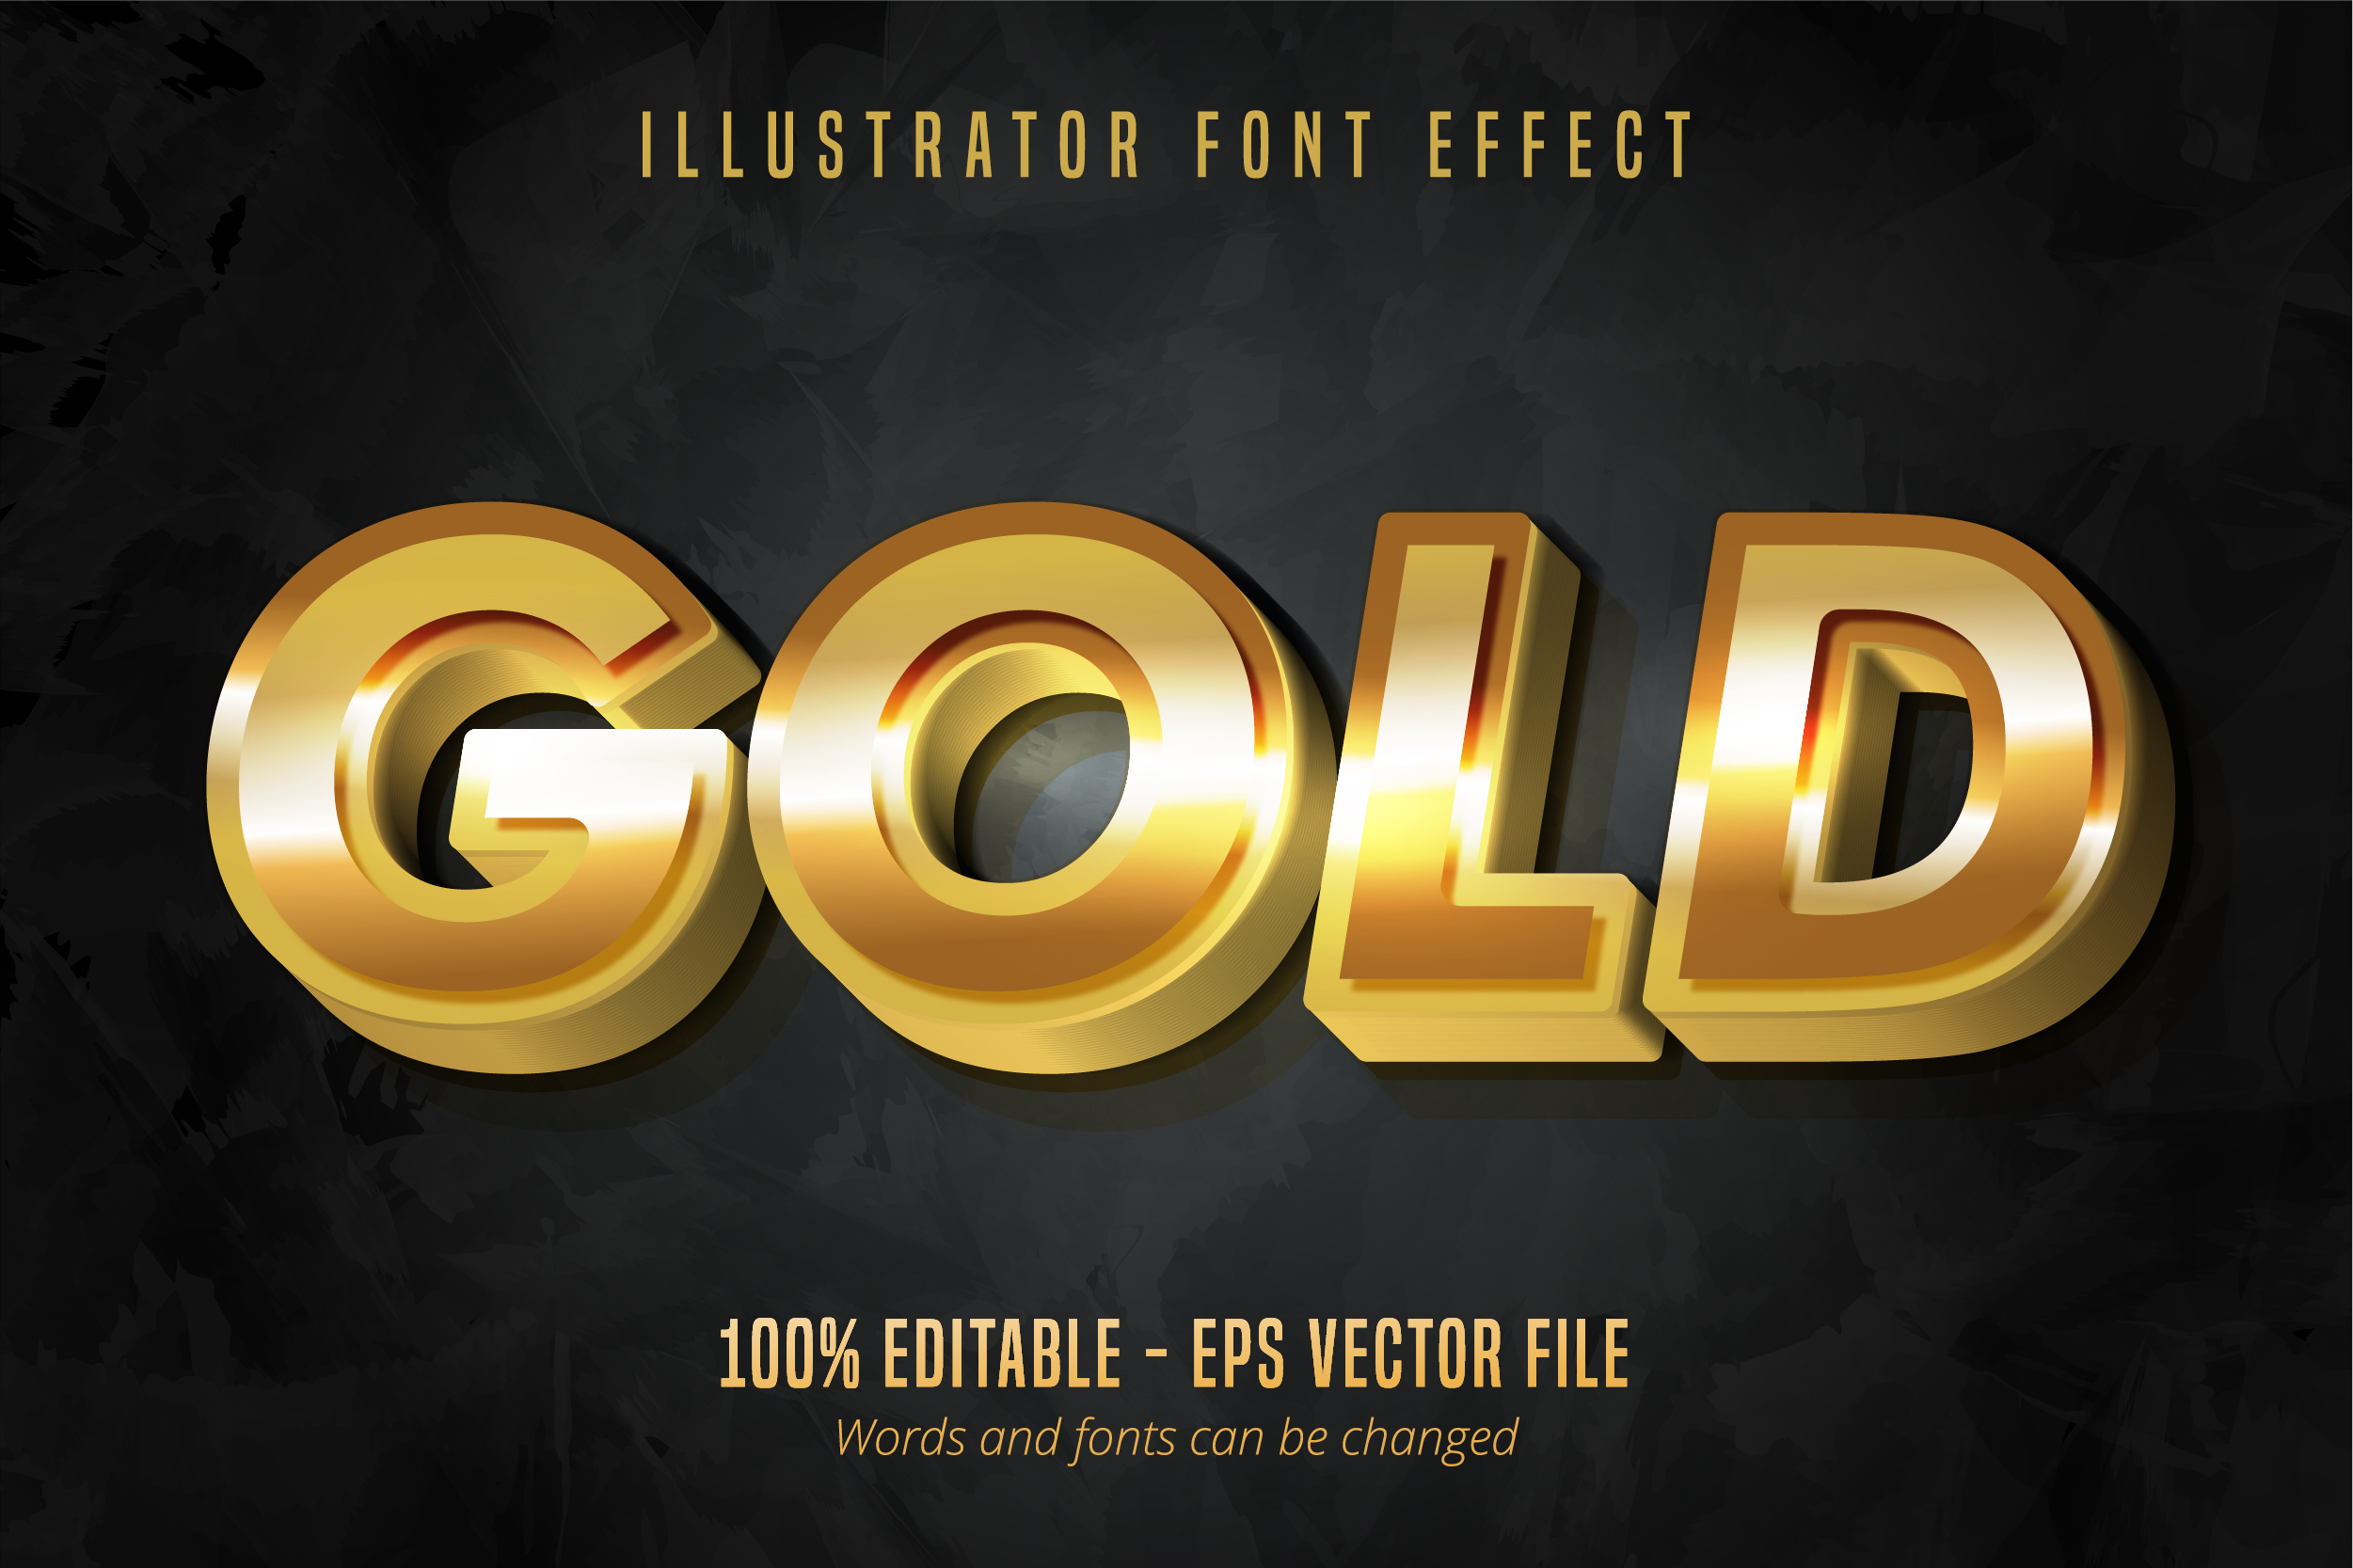 Download Free Metallic Shiny Gold Text Effect Grafik Von Mustafa Beksen for Cricut Explore, Silhouette and other cutting machines.